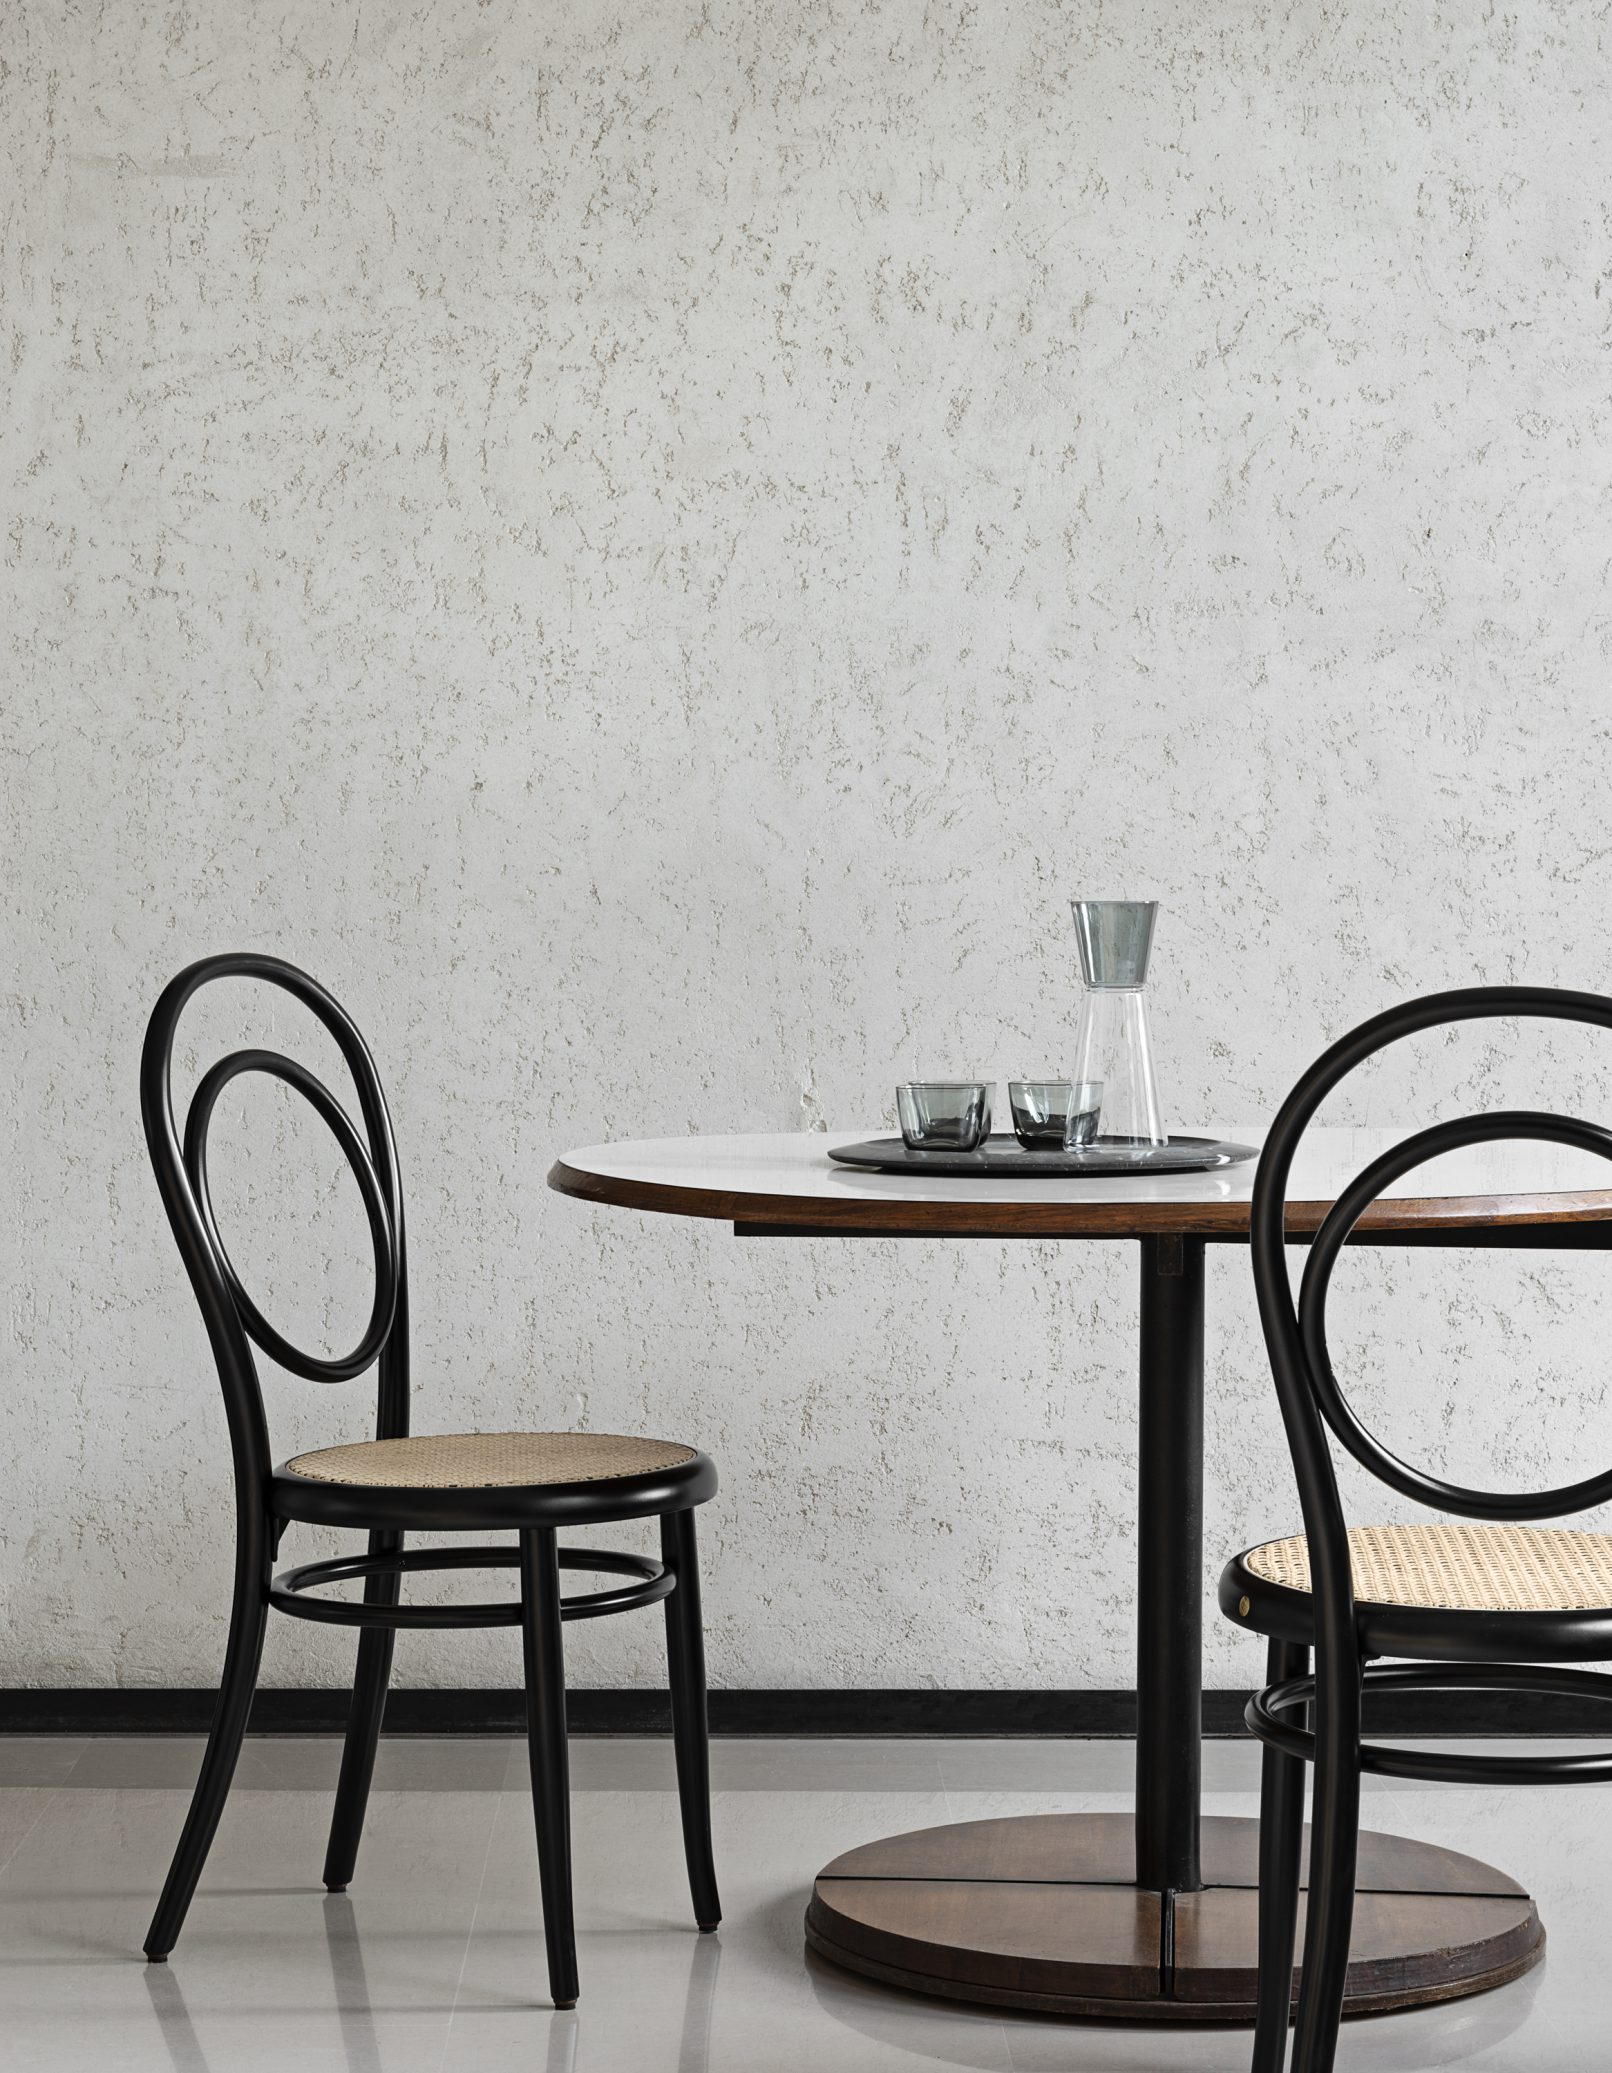 N.14 Black Chair - This exceptional chair reinterprets the elegance and timeless charm of the classic bistro chair. Every element that composes its structure is crafted of solid beechwood bent using steam, creating the elegant curves of the back and the rings below the plywood seat. Entirely veneered in black, this piece will be a superb addition to a modern dining room. It is also available with seat in Viennese cane or perforated plywood, please ask the Concierge for details.    Matter of Stuff